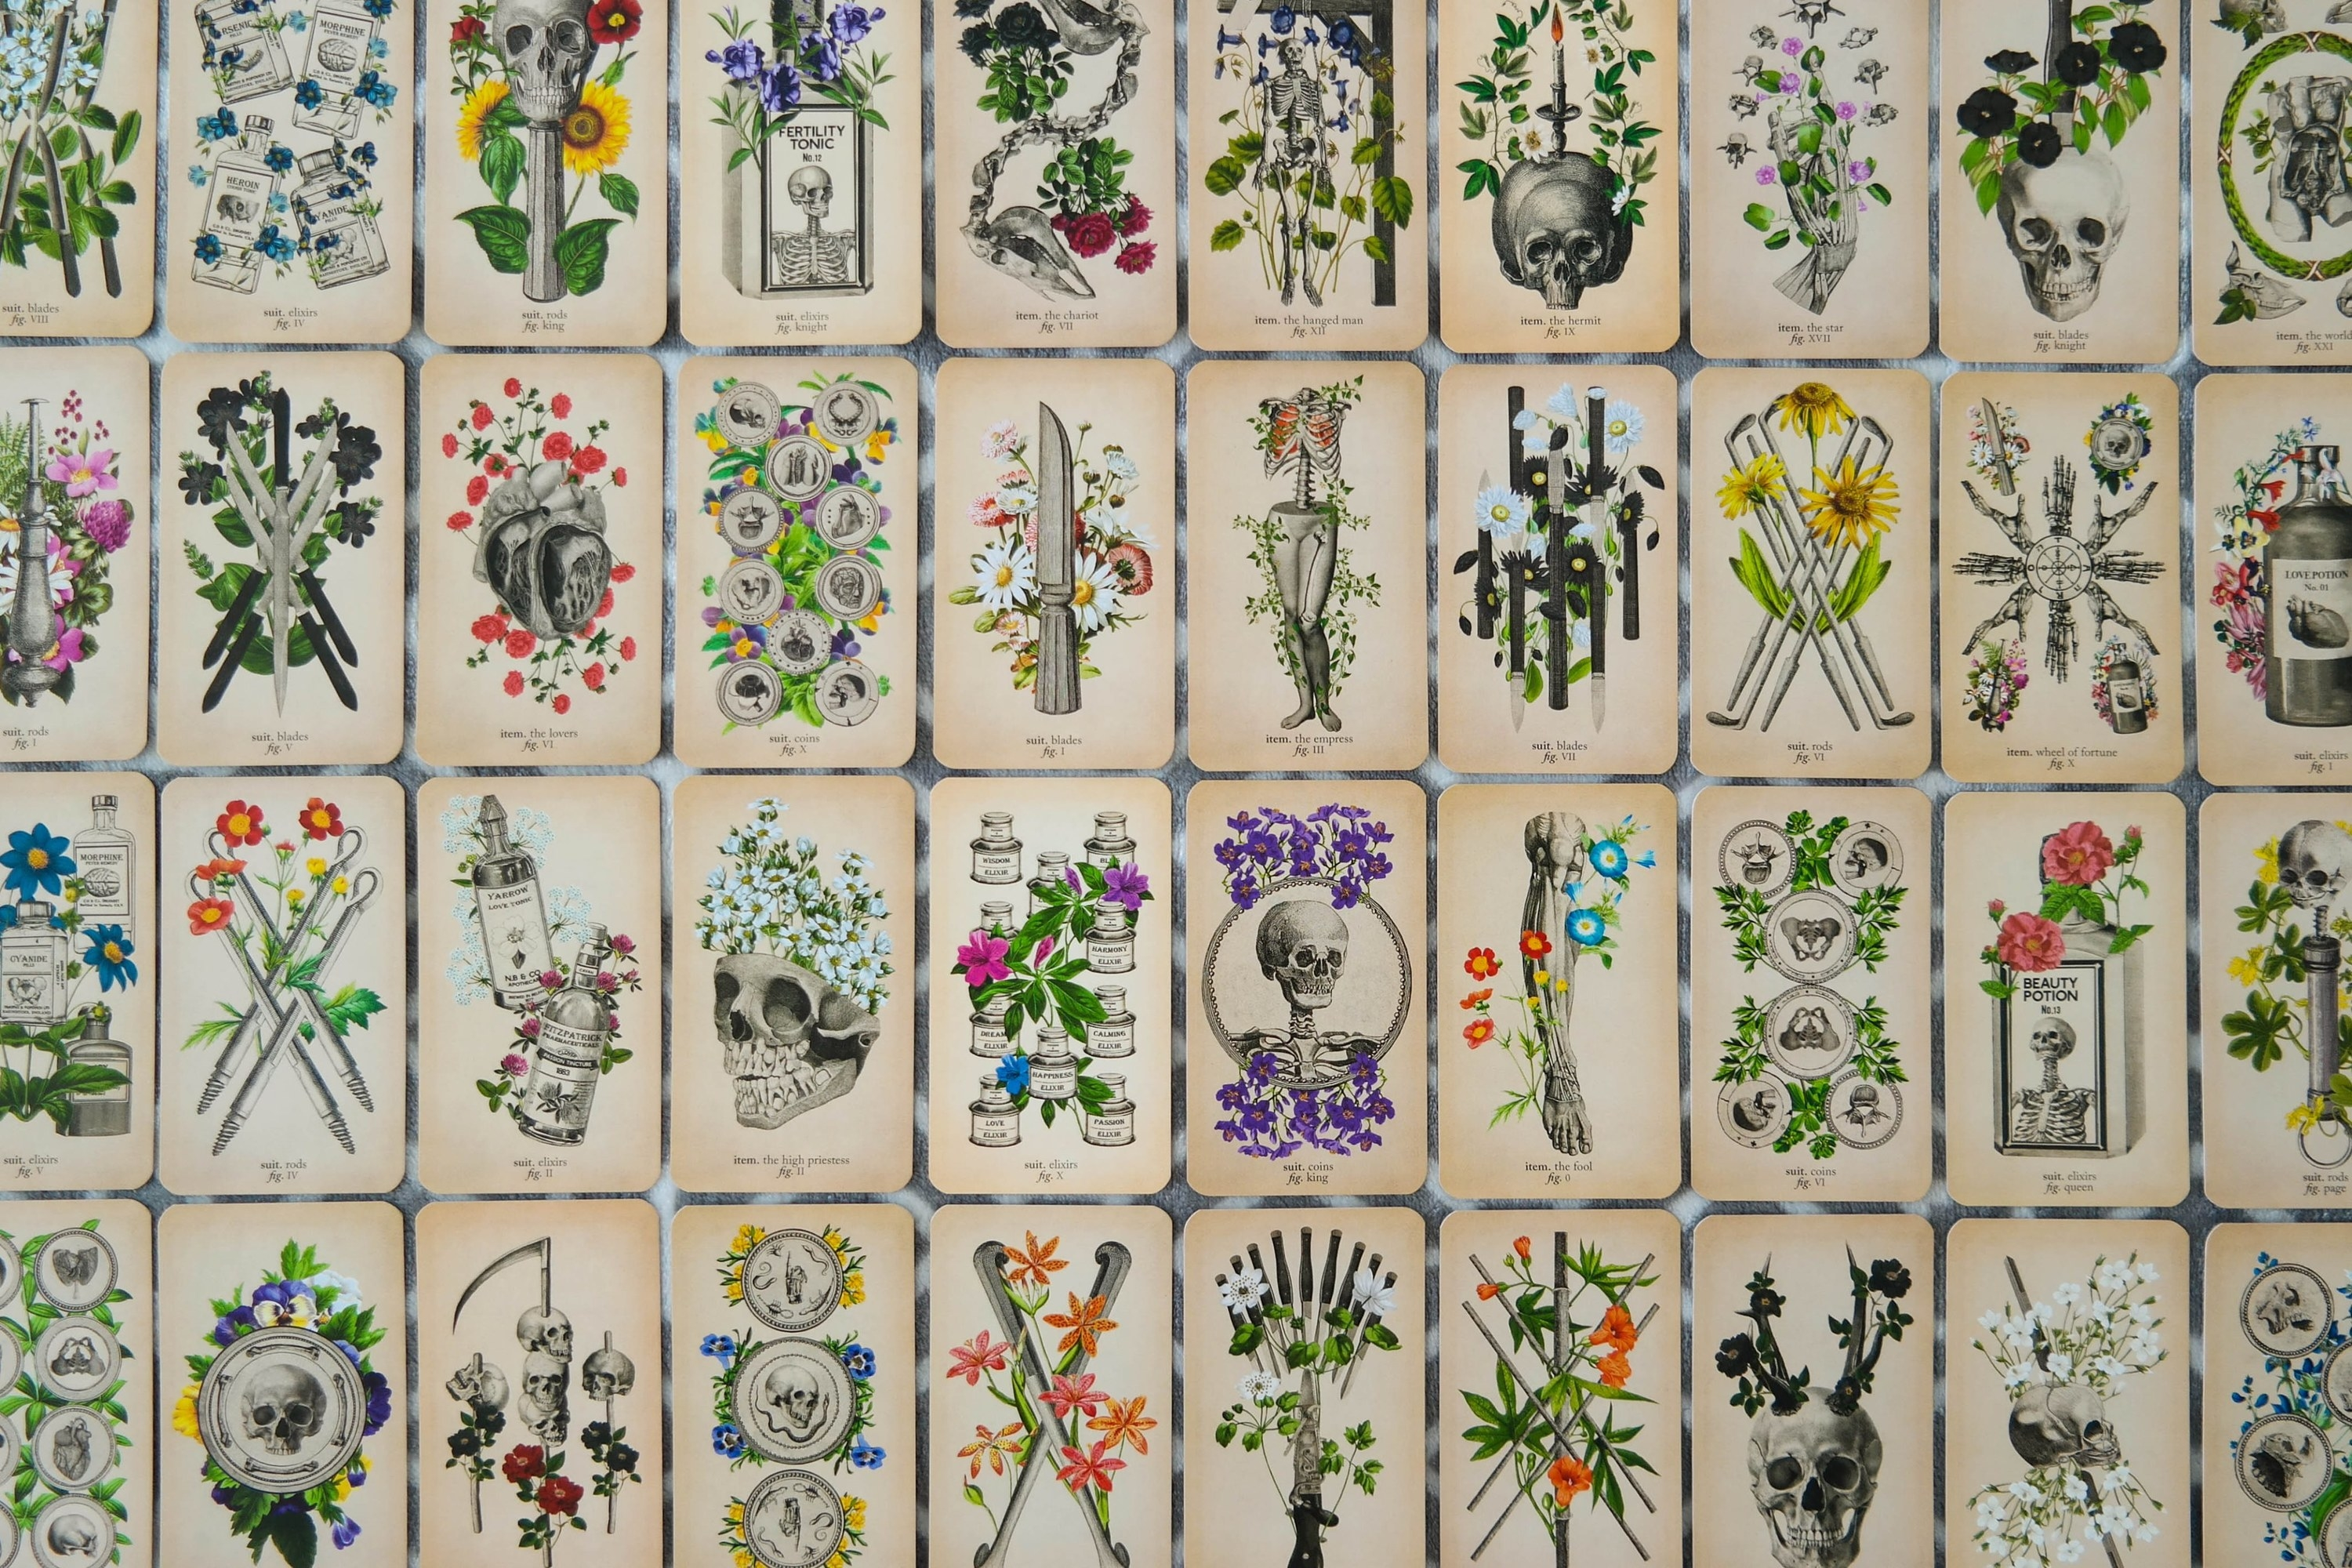 The cards of the Antique Anatomy tarot deck lay face up in a grid